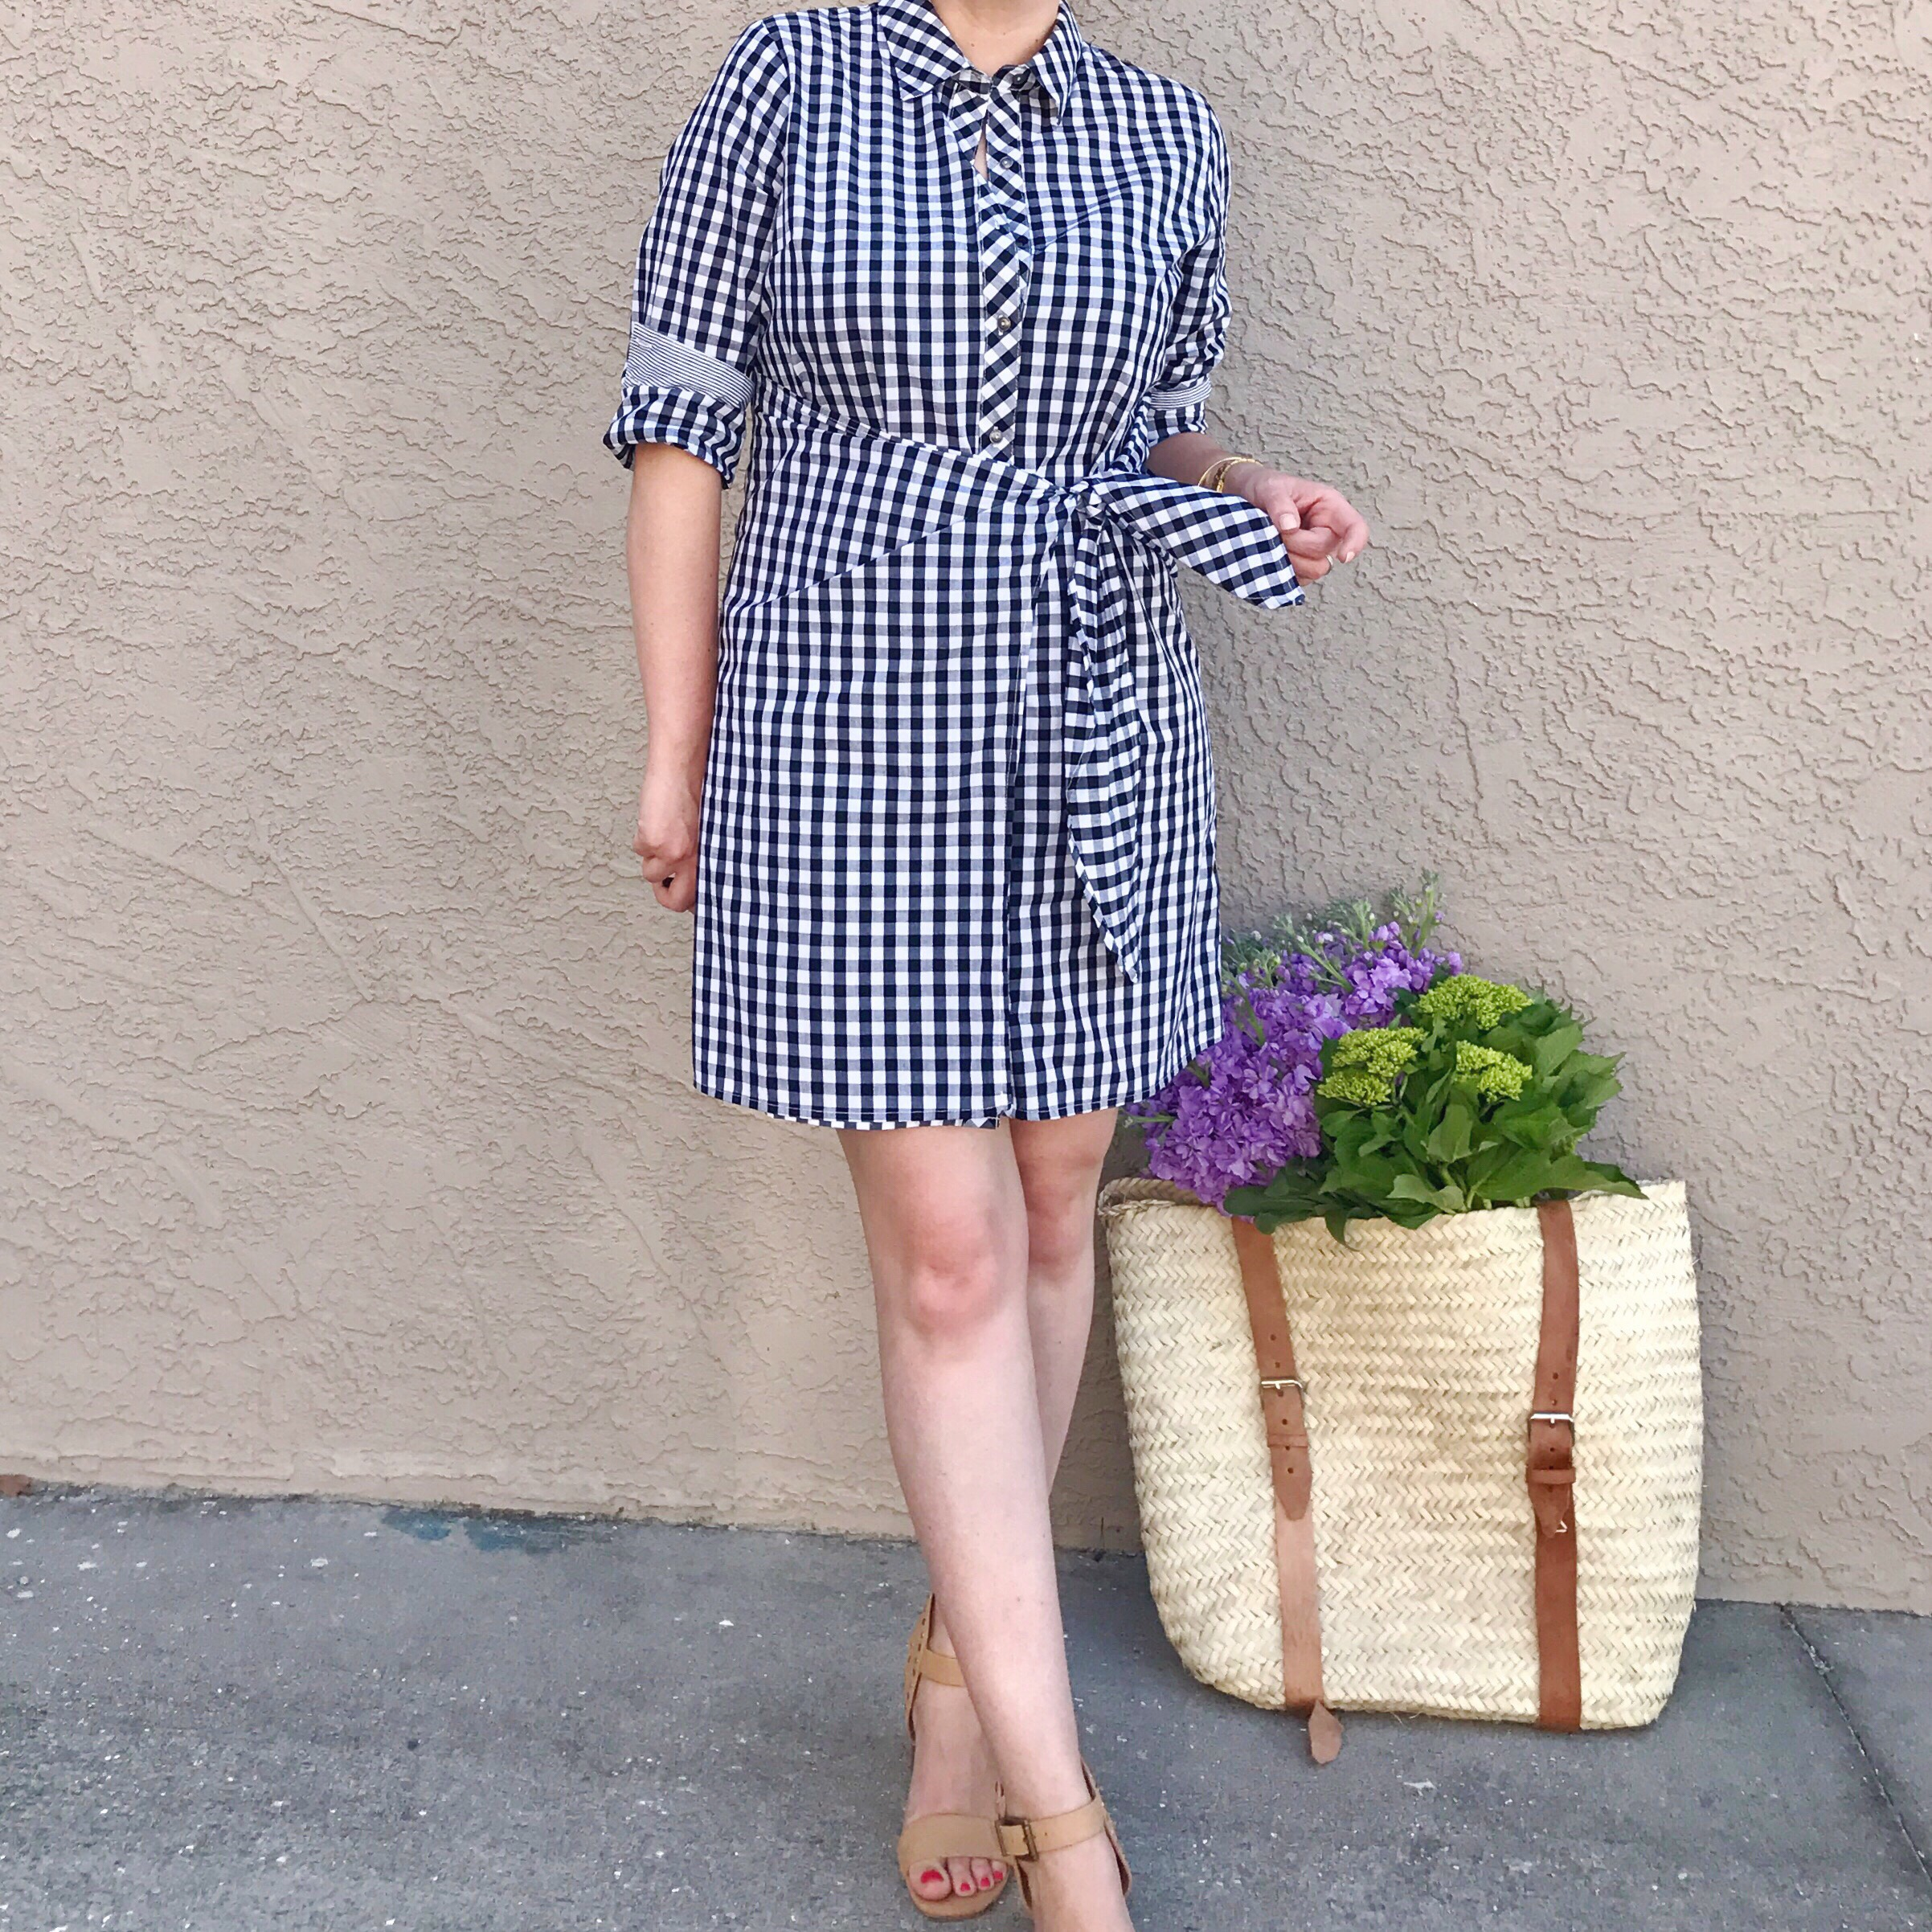 style blogger, gingham shirt dress outfit, spring and summer style, easy outfit ideas